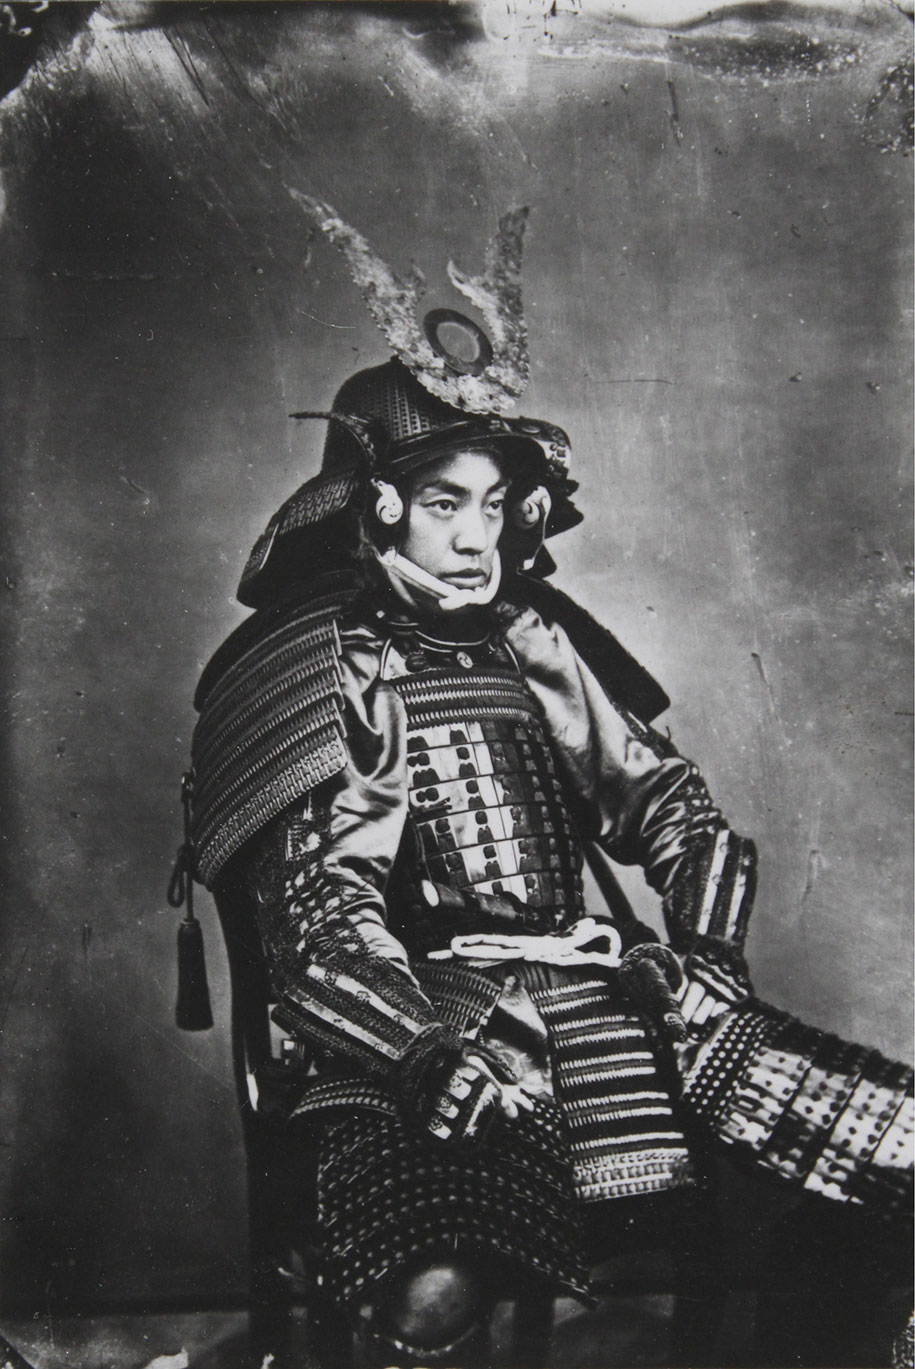 photos-of-the-last-samurai-japan-1800s-6